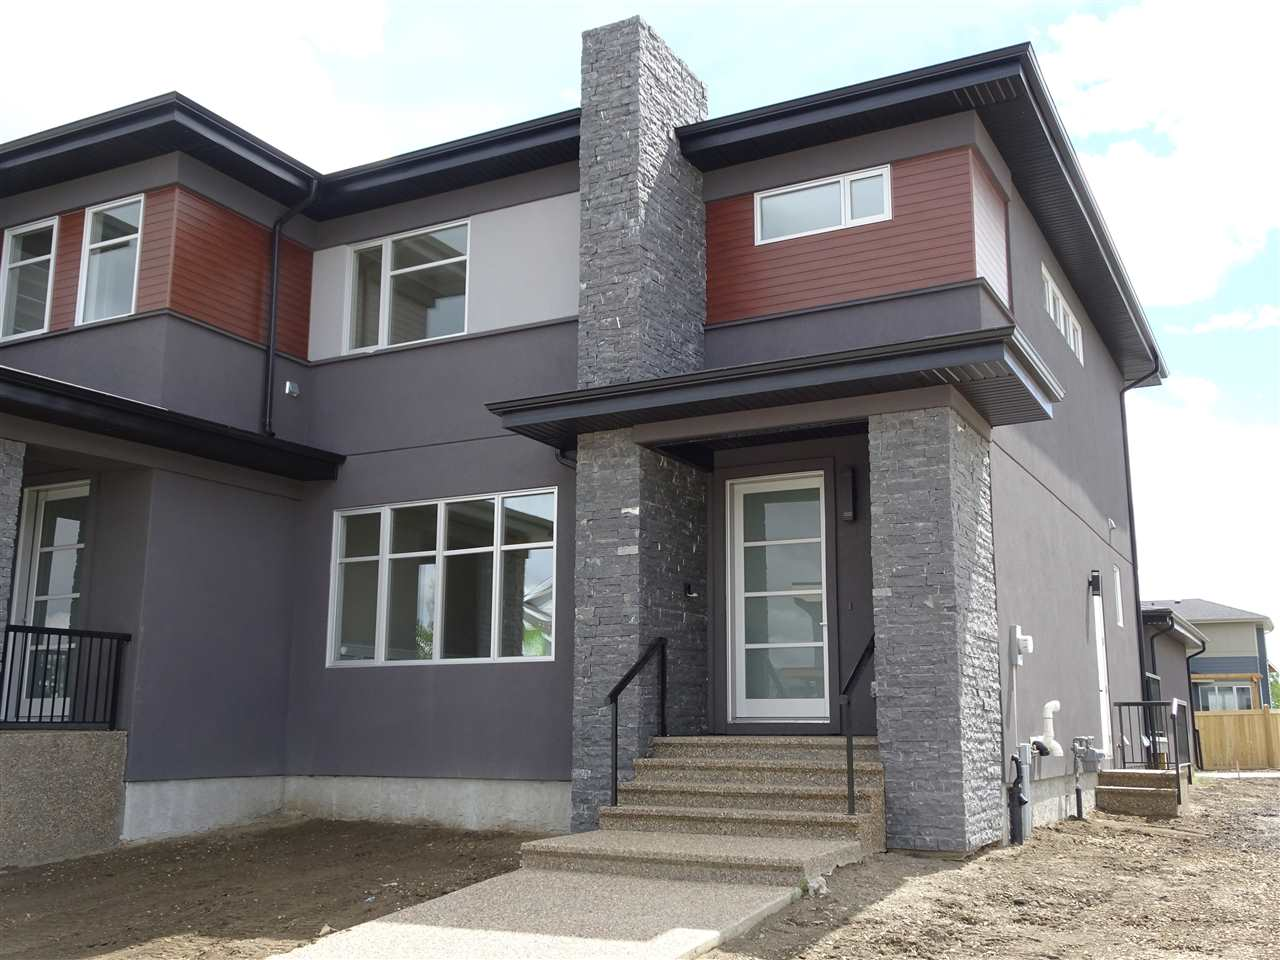 Photo 2: 7255 MAY Road in Edmonton: Zone 14 House Half Duplex for sale : MLS(r) # E4068408